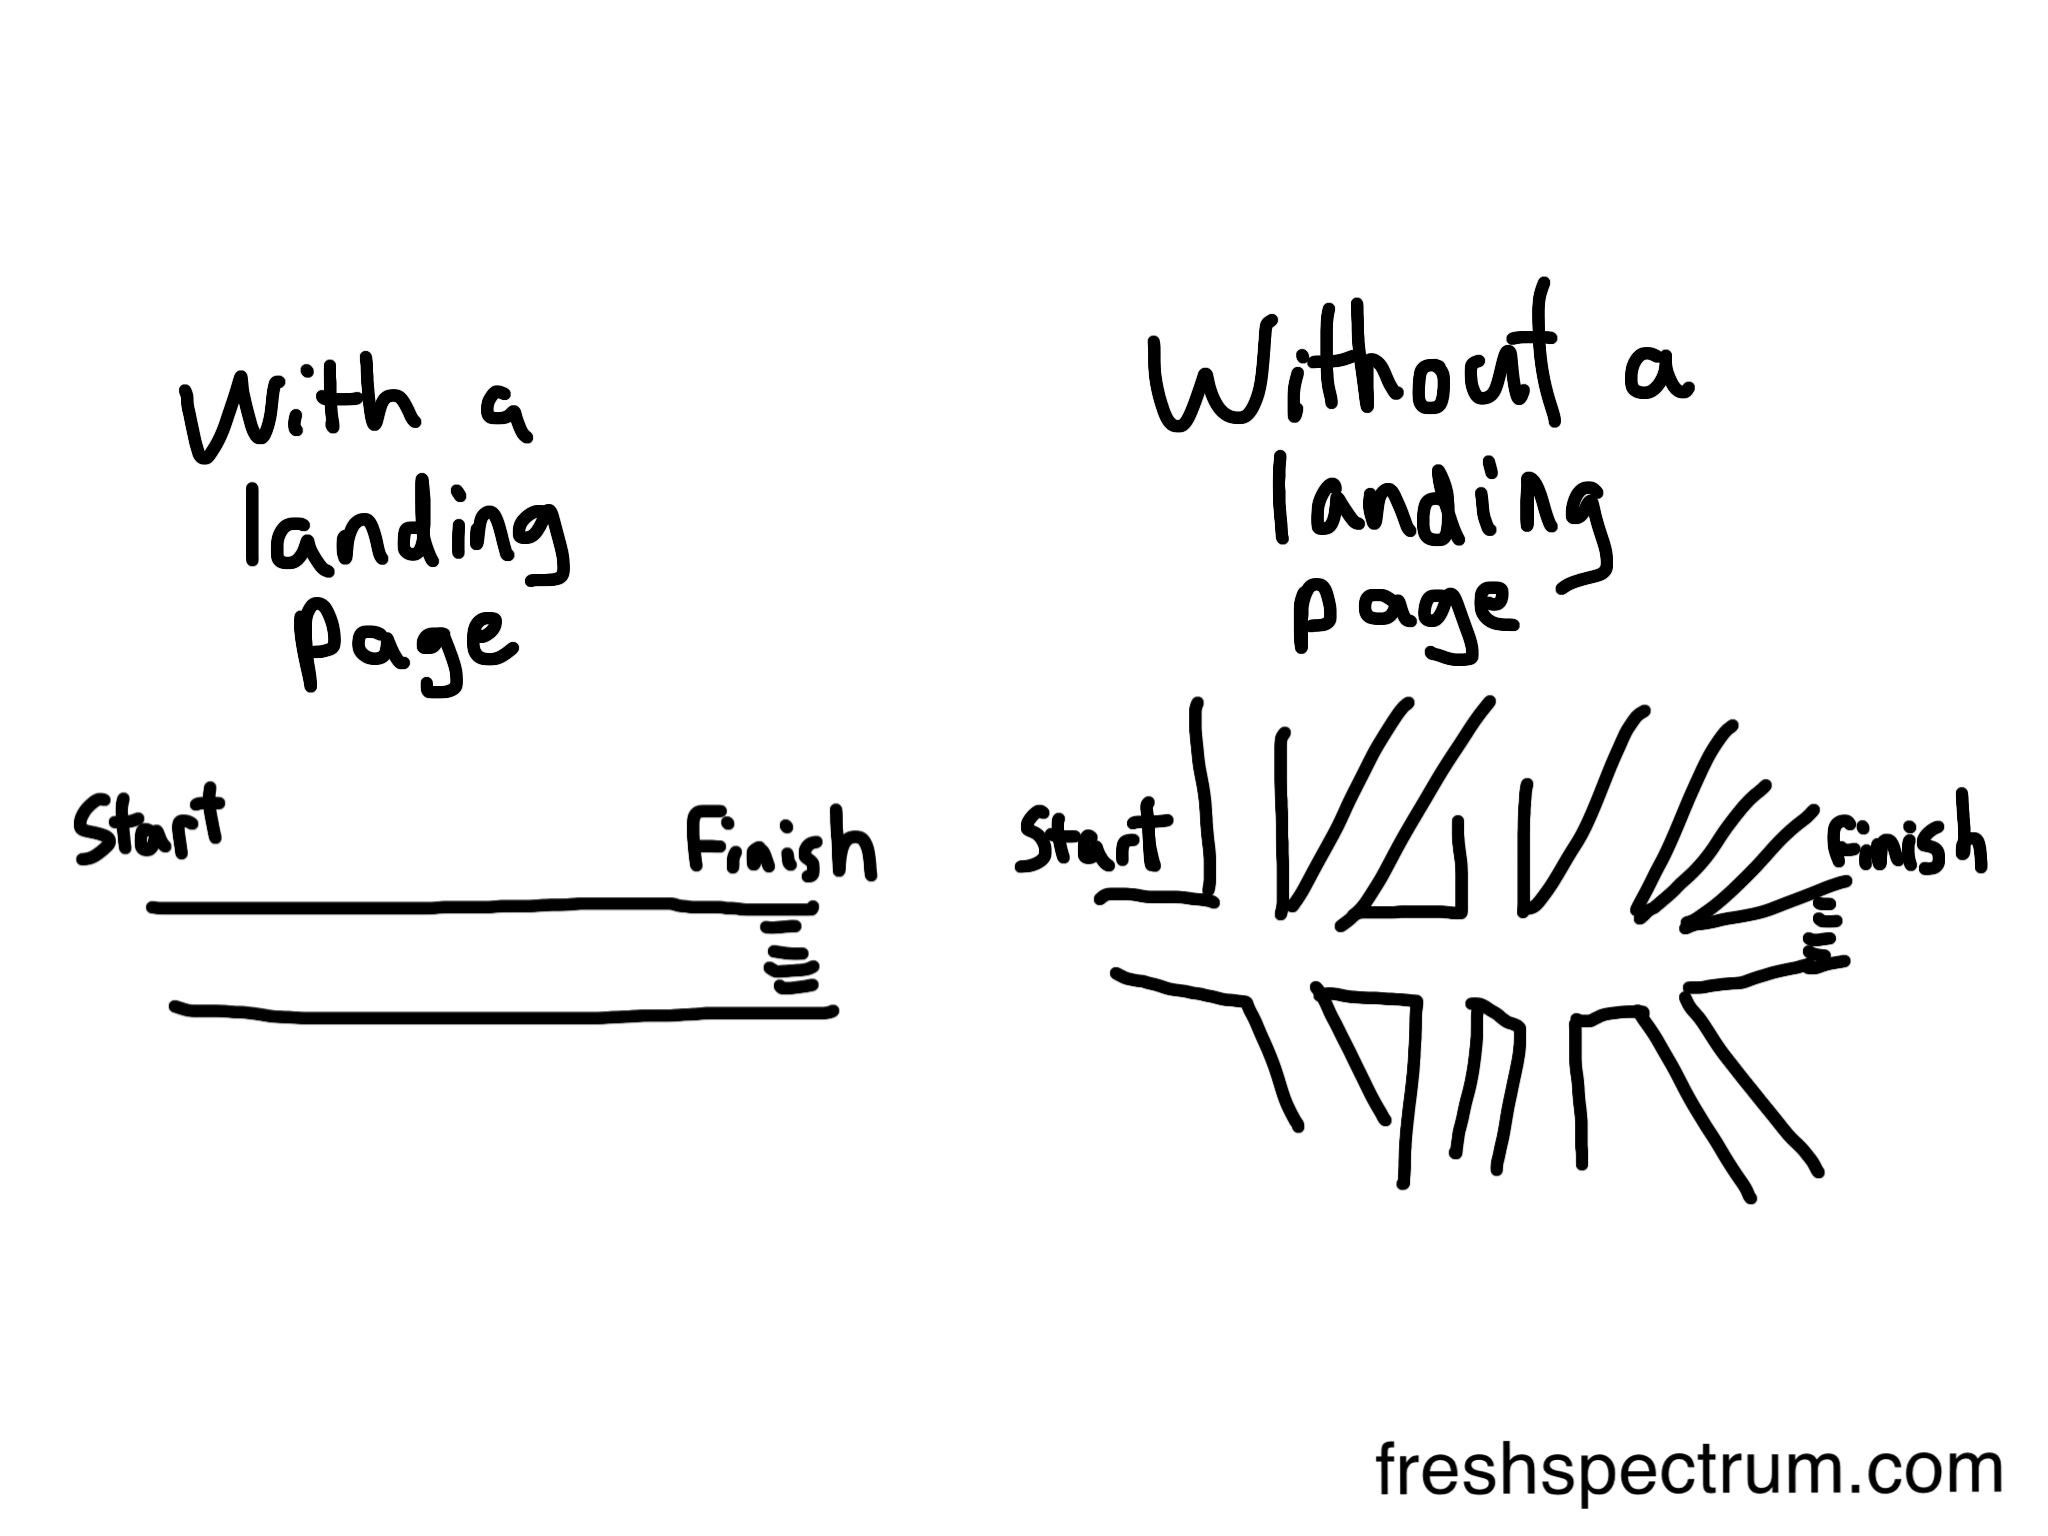 With a landing page cartoon by Chris Lysy